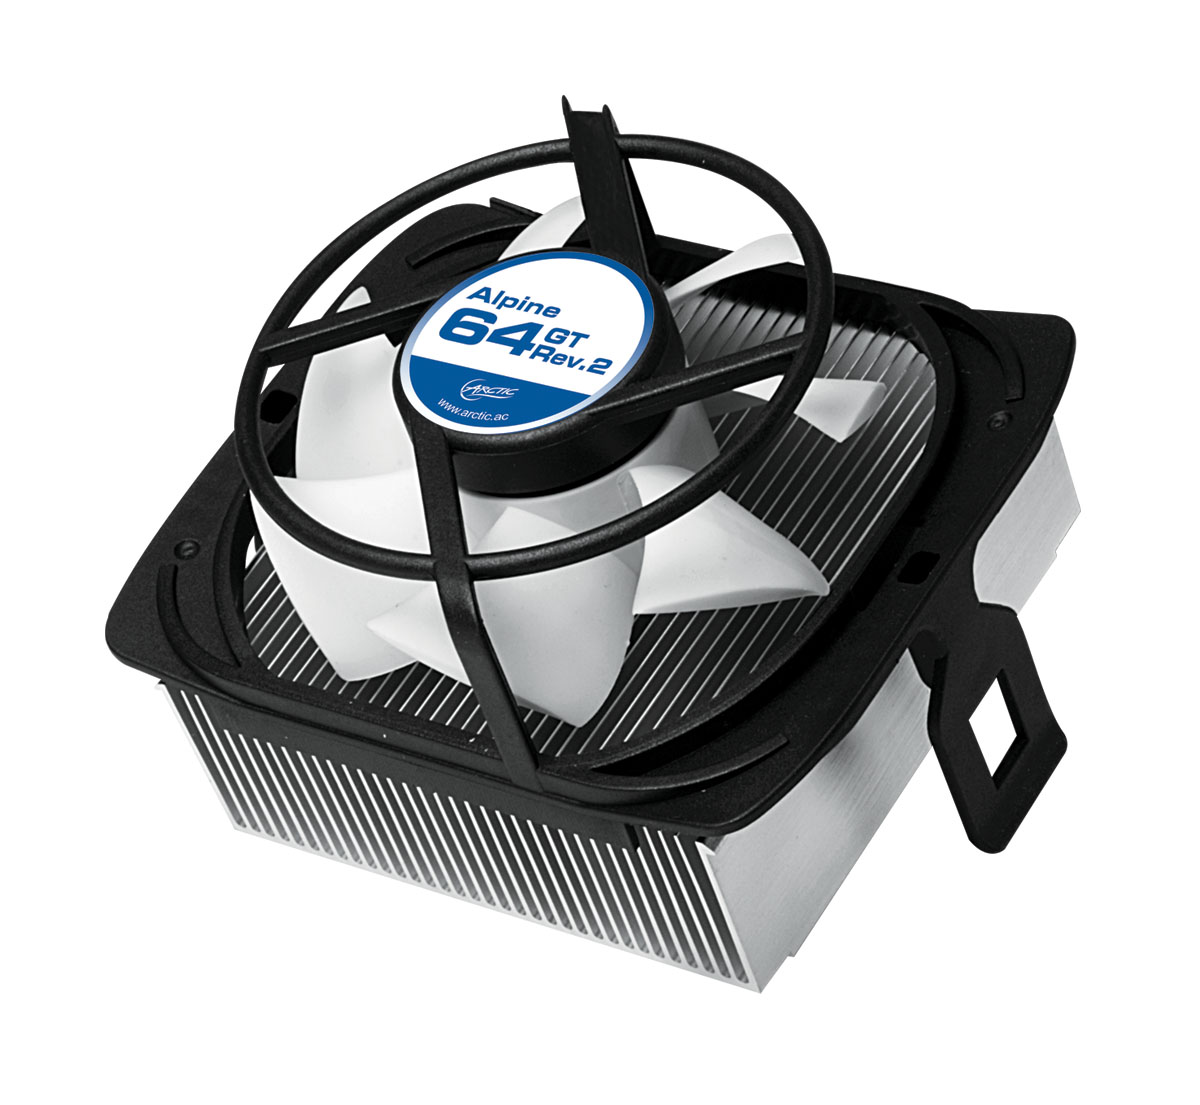 FAN x CPU ARCTIC ALPINE 64 GT Rev.2